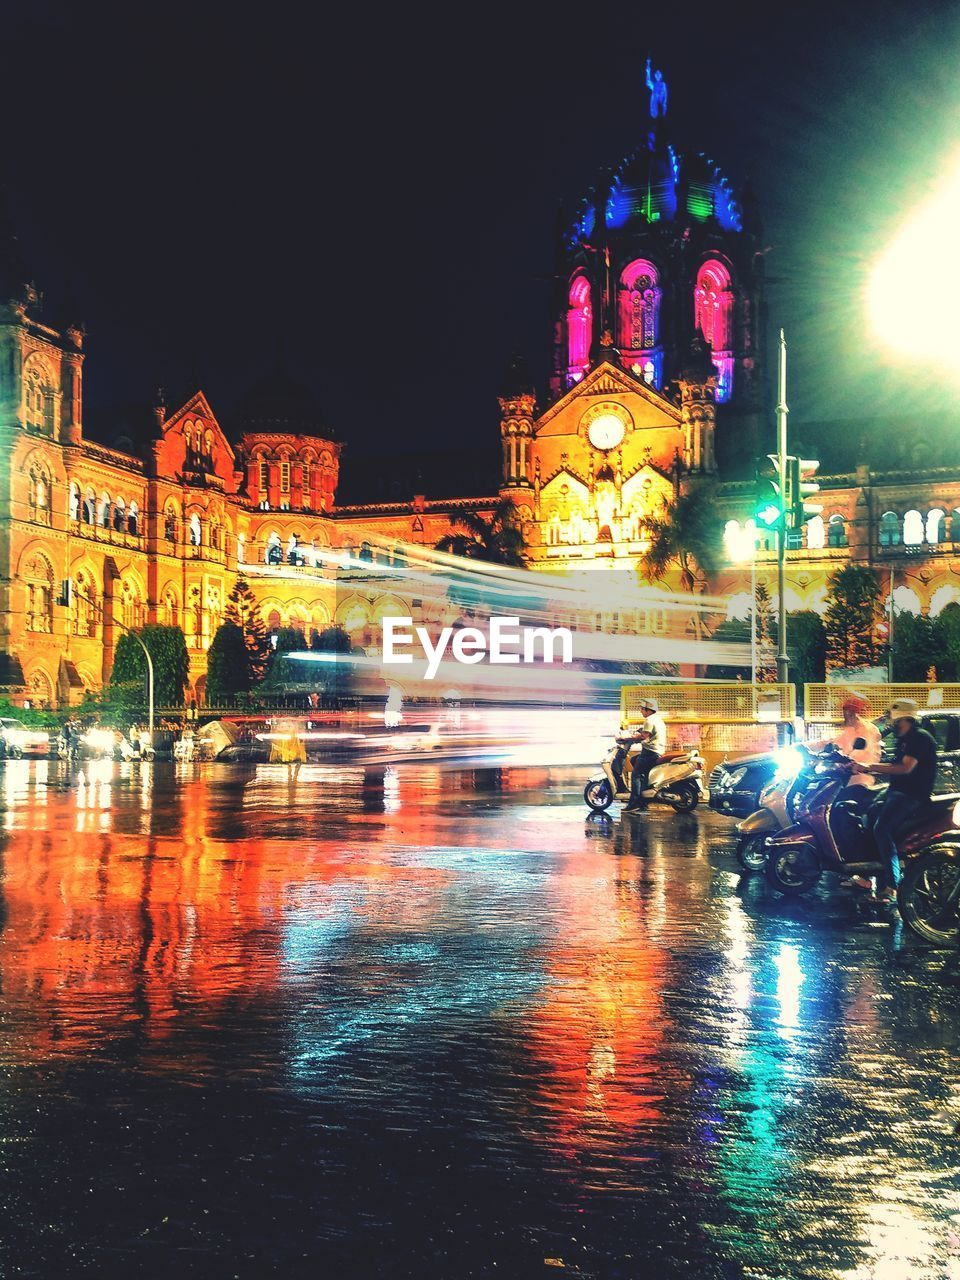 architecture, building exterior, built structure, night, illuminated, city, water, street, building, motion, blurred motion, travel, reflection, incidental people, wet, transportation, mode of transportation, travel destinations, nature, rain, outdoors